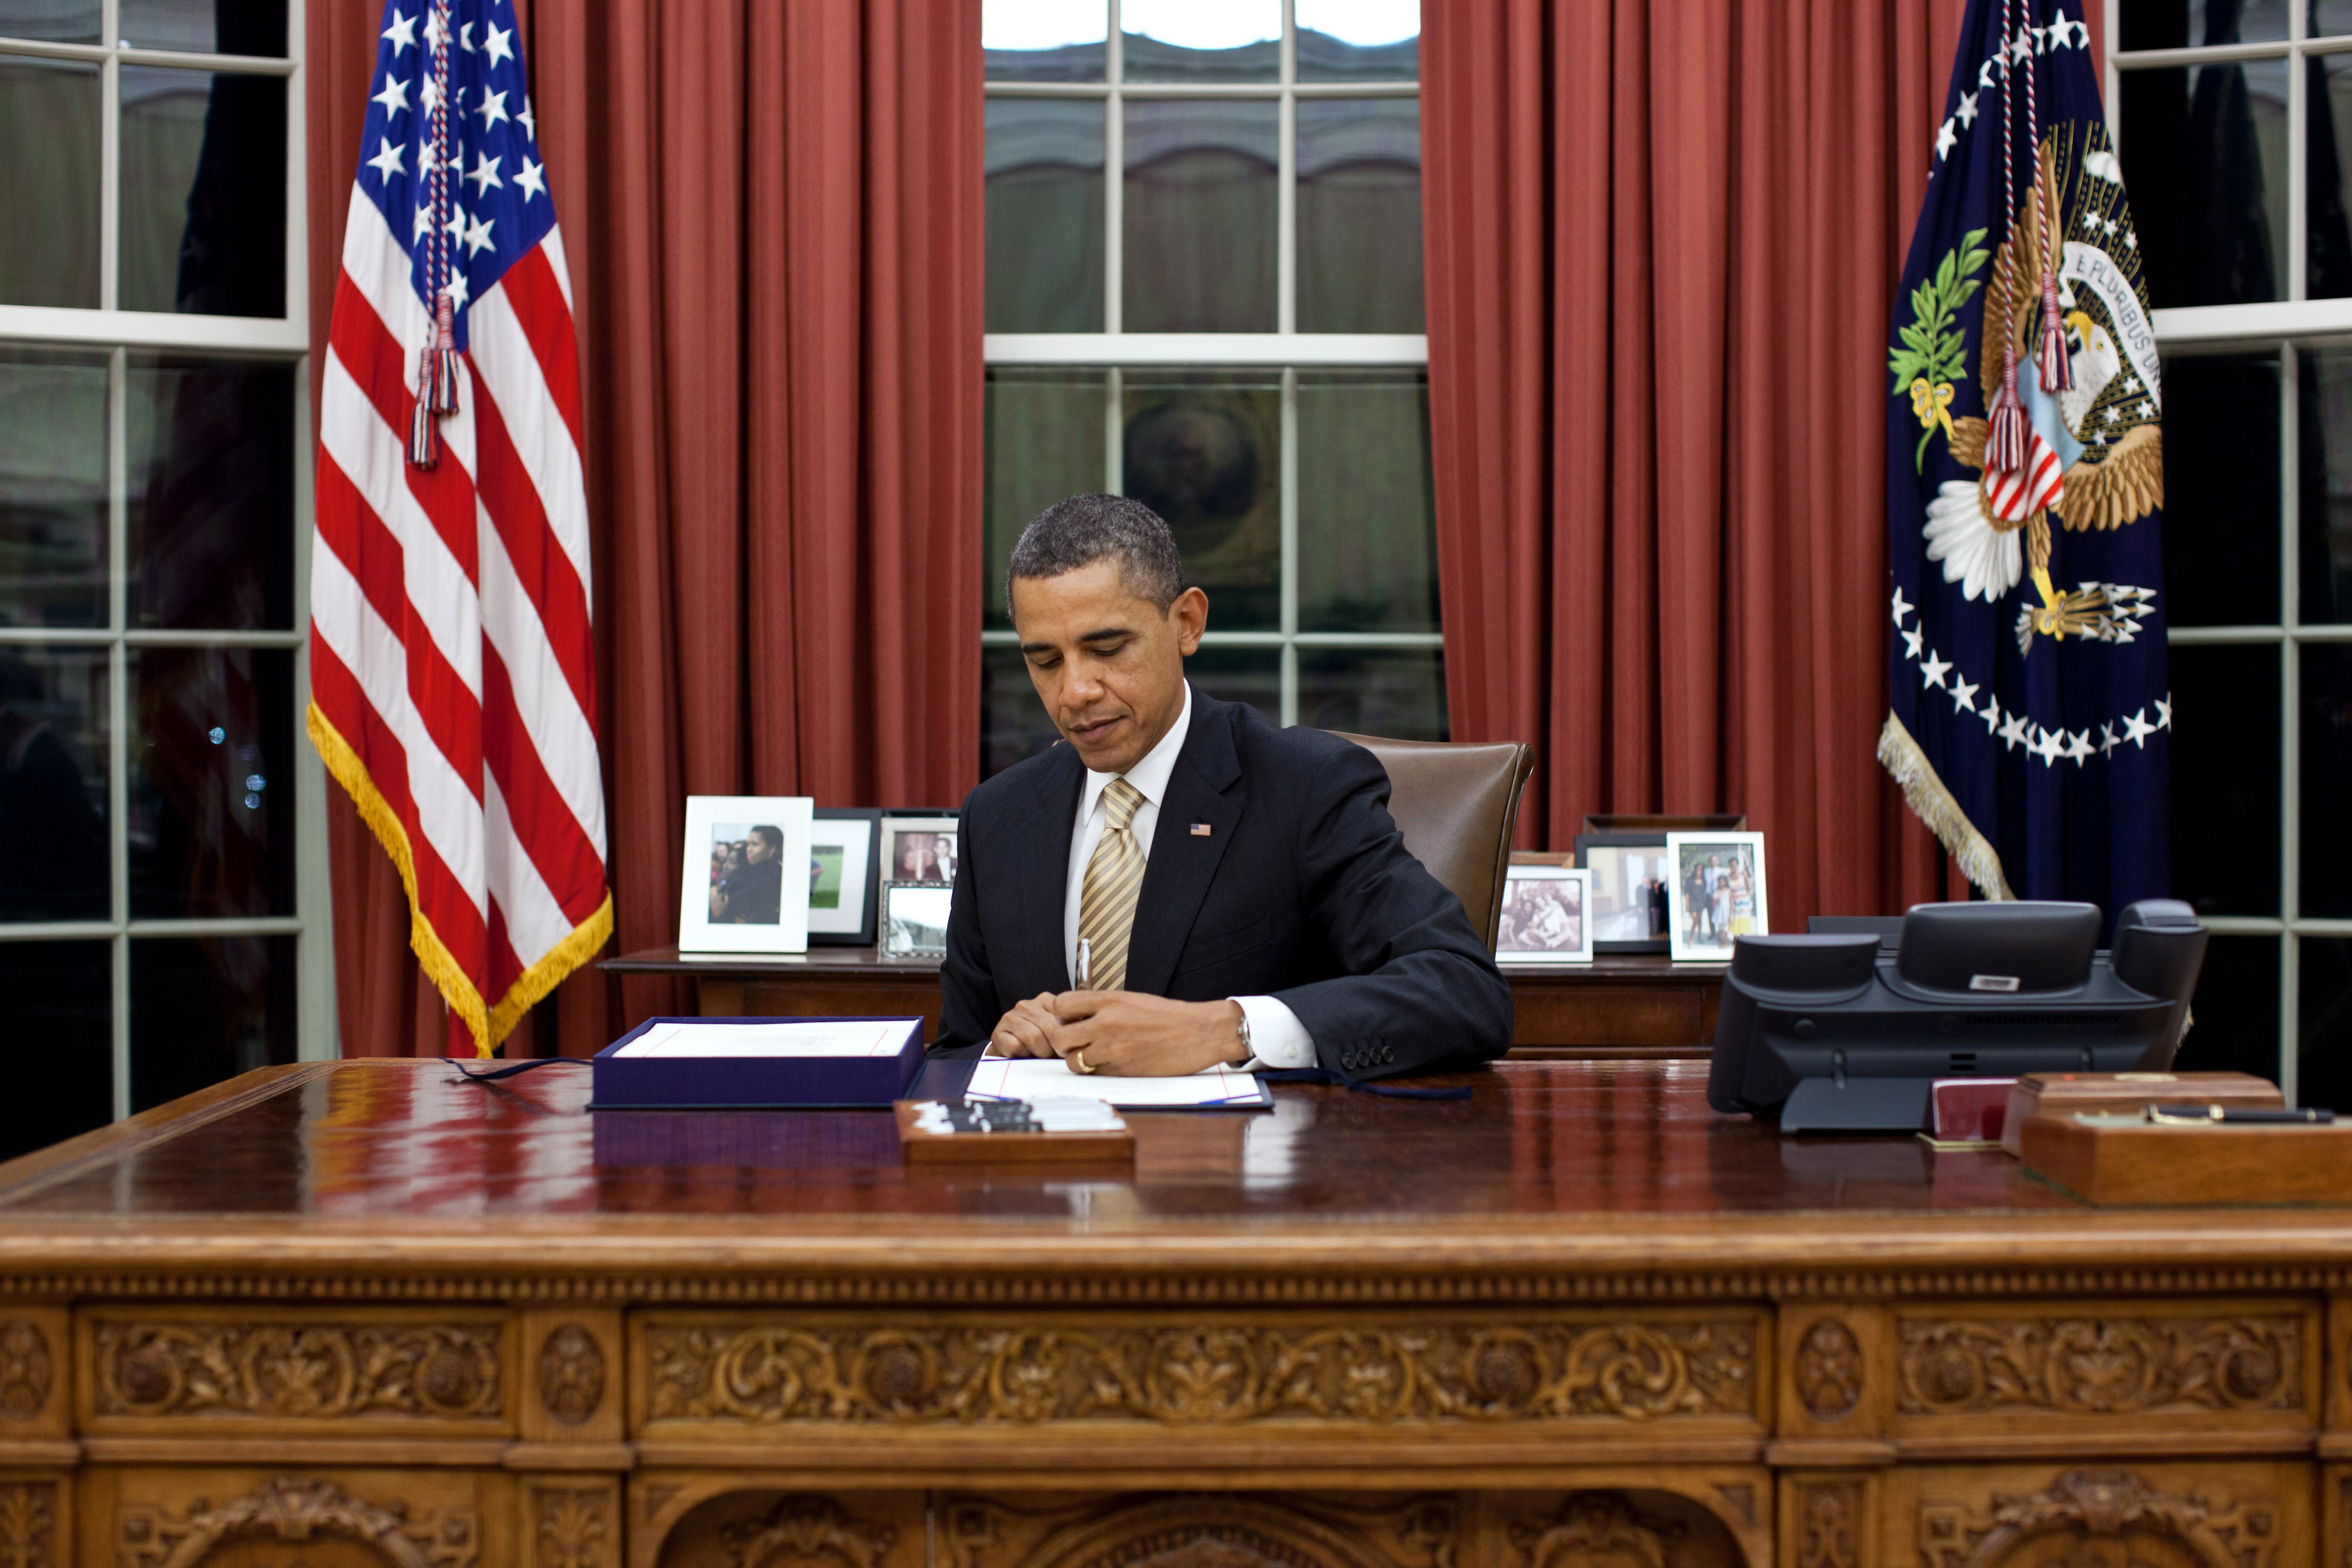 President Obama signs the payroll tax cut (February 22, 2012)